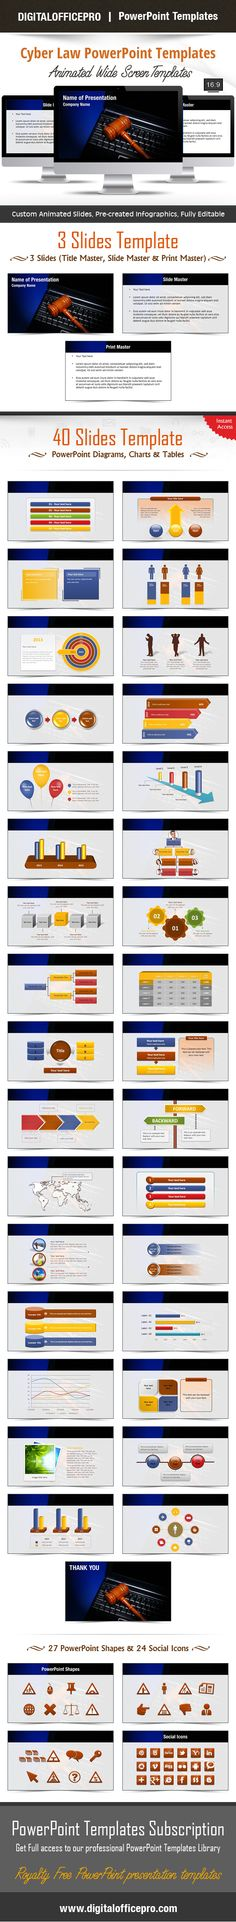 Legal powerpoint template is a free legal background template for impress and engage your audience with cyber law powerpoint template and cyber law powerpoint backgrounds from toneelgroepblik Image collections